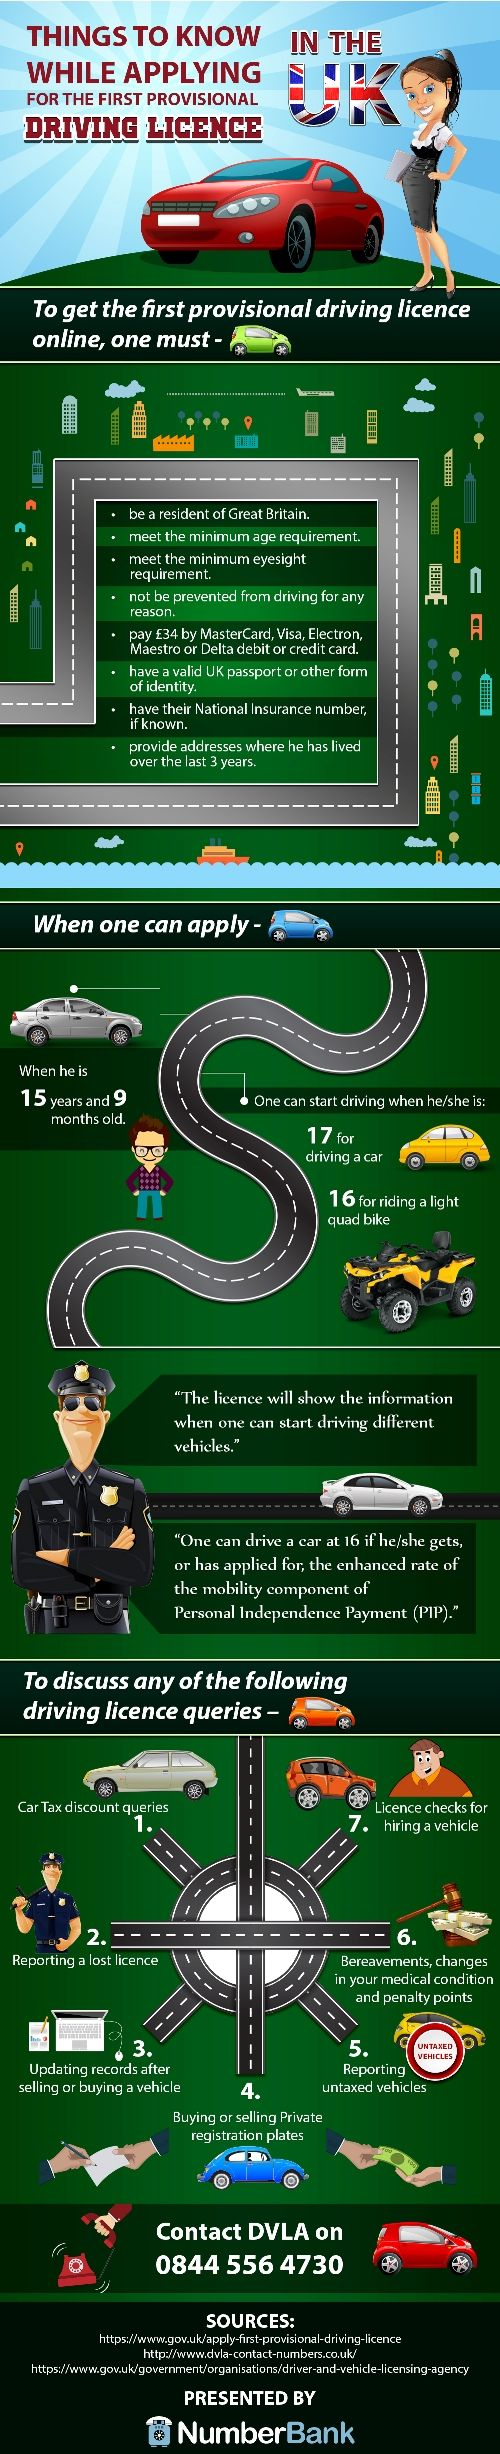 The infographic titled 'Things to know while applying for the first provisional driving licence in the UK' has been created with the central theme of telling customers about the things to know while applying for the first provisional driving licence in the UK. It also provides information on contact number (0844 556 4730) which can be used to call DVLA (Driver and Vehicle Licensing Agency) customer service in UK http://www.dvla-contact-numbers.co.uk/